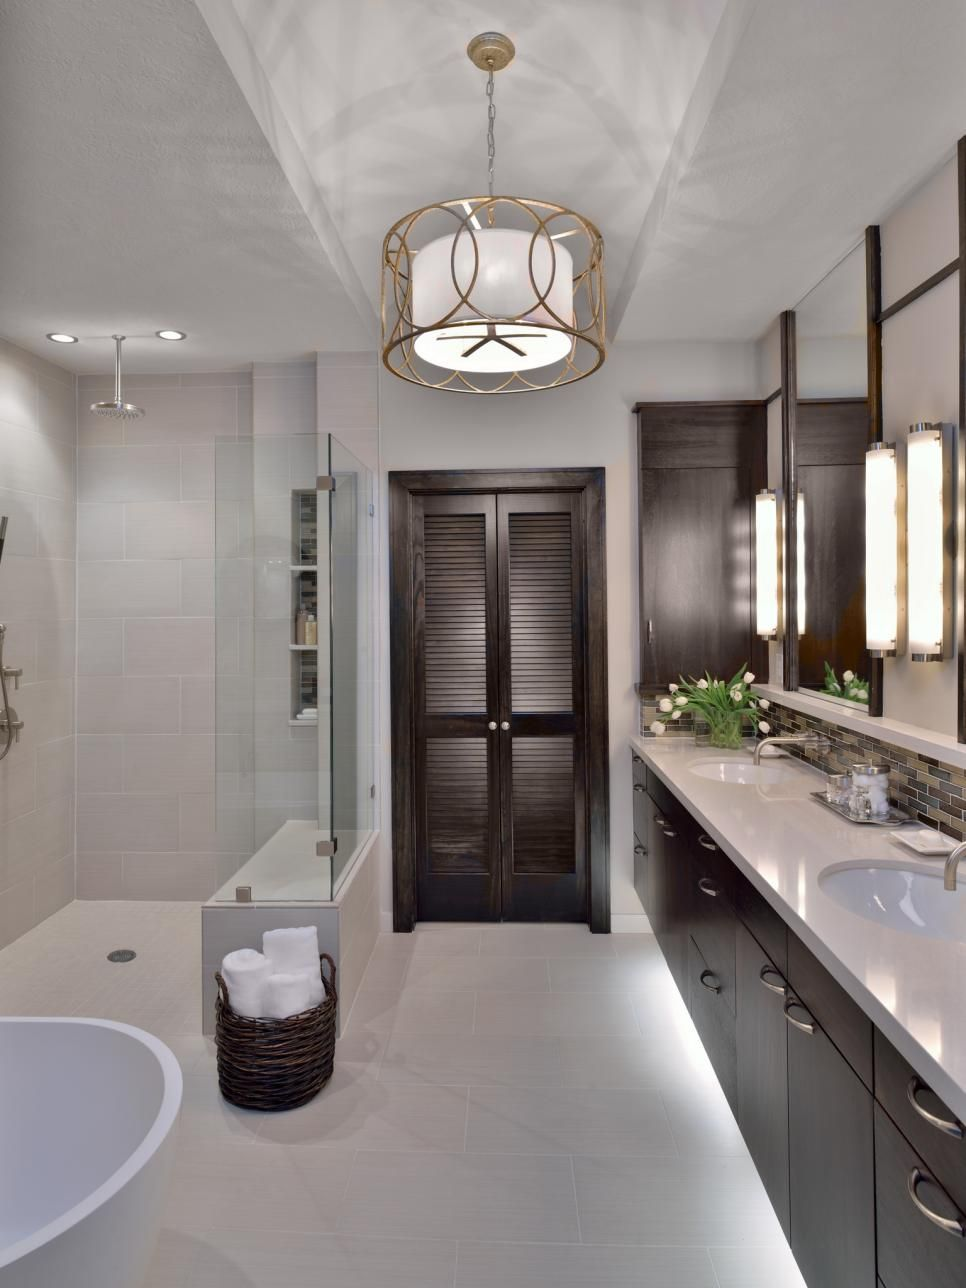 This Bathroom Is Given A Modern Linear Feel Using Neutral